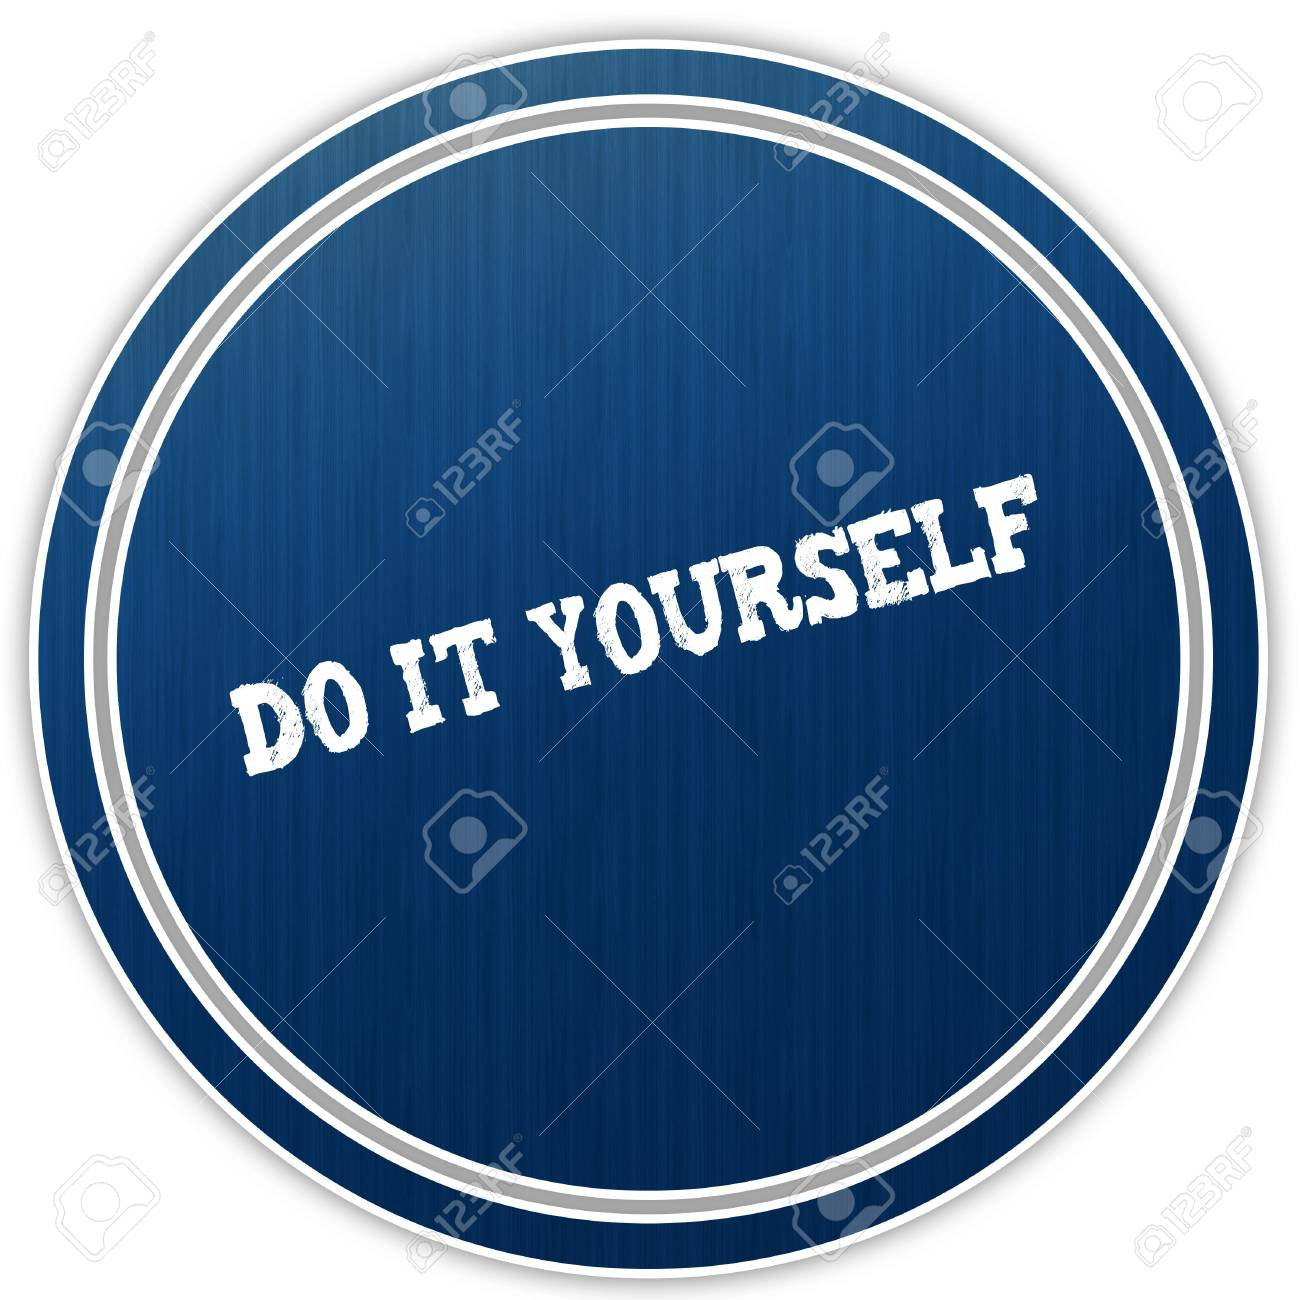 Do it yourself distressed text on blue round badge illustration do it yourself distressed text on blue round badge illustration stock illustration 94055186 solutioingenieria Image collections